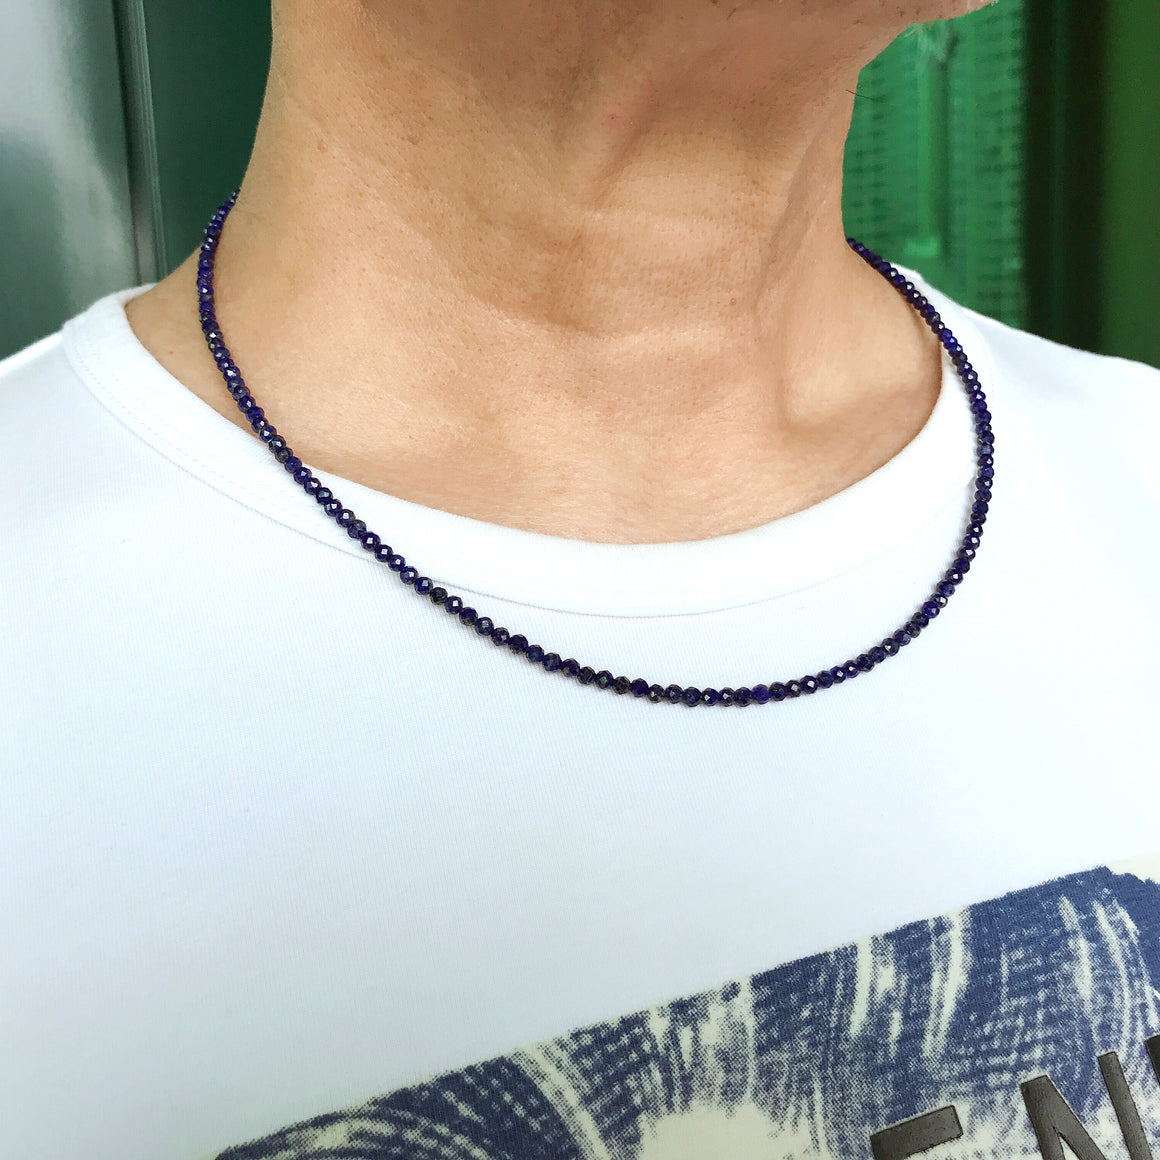 Handmade Adjustable Chain Crystal Necklace - Men's Women's Daily Wear, Awareness with Healing Natural Lapis Lazuli 3mm Faceted Beads, Genuine Non-Plated S925 Sterling Silver Clasp NK256